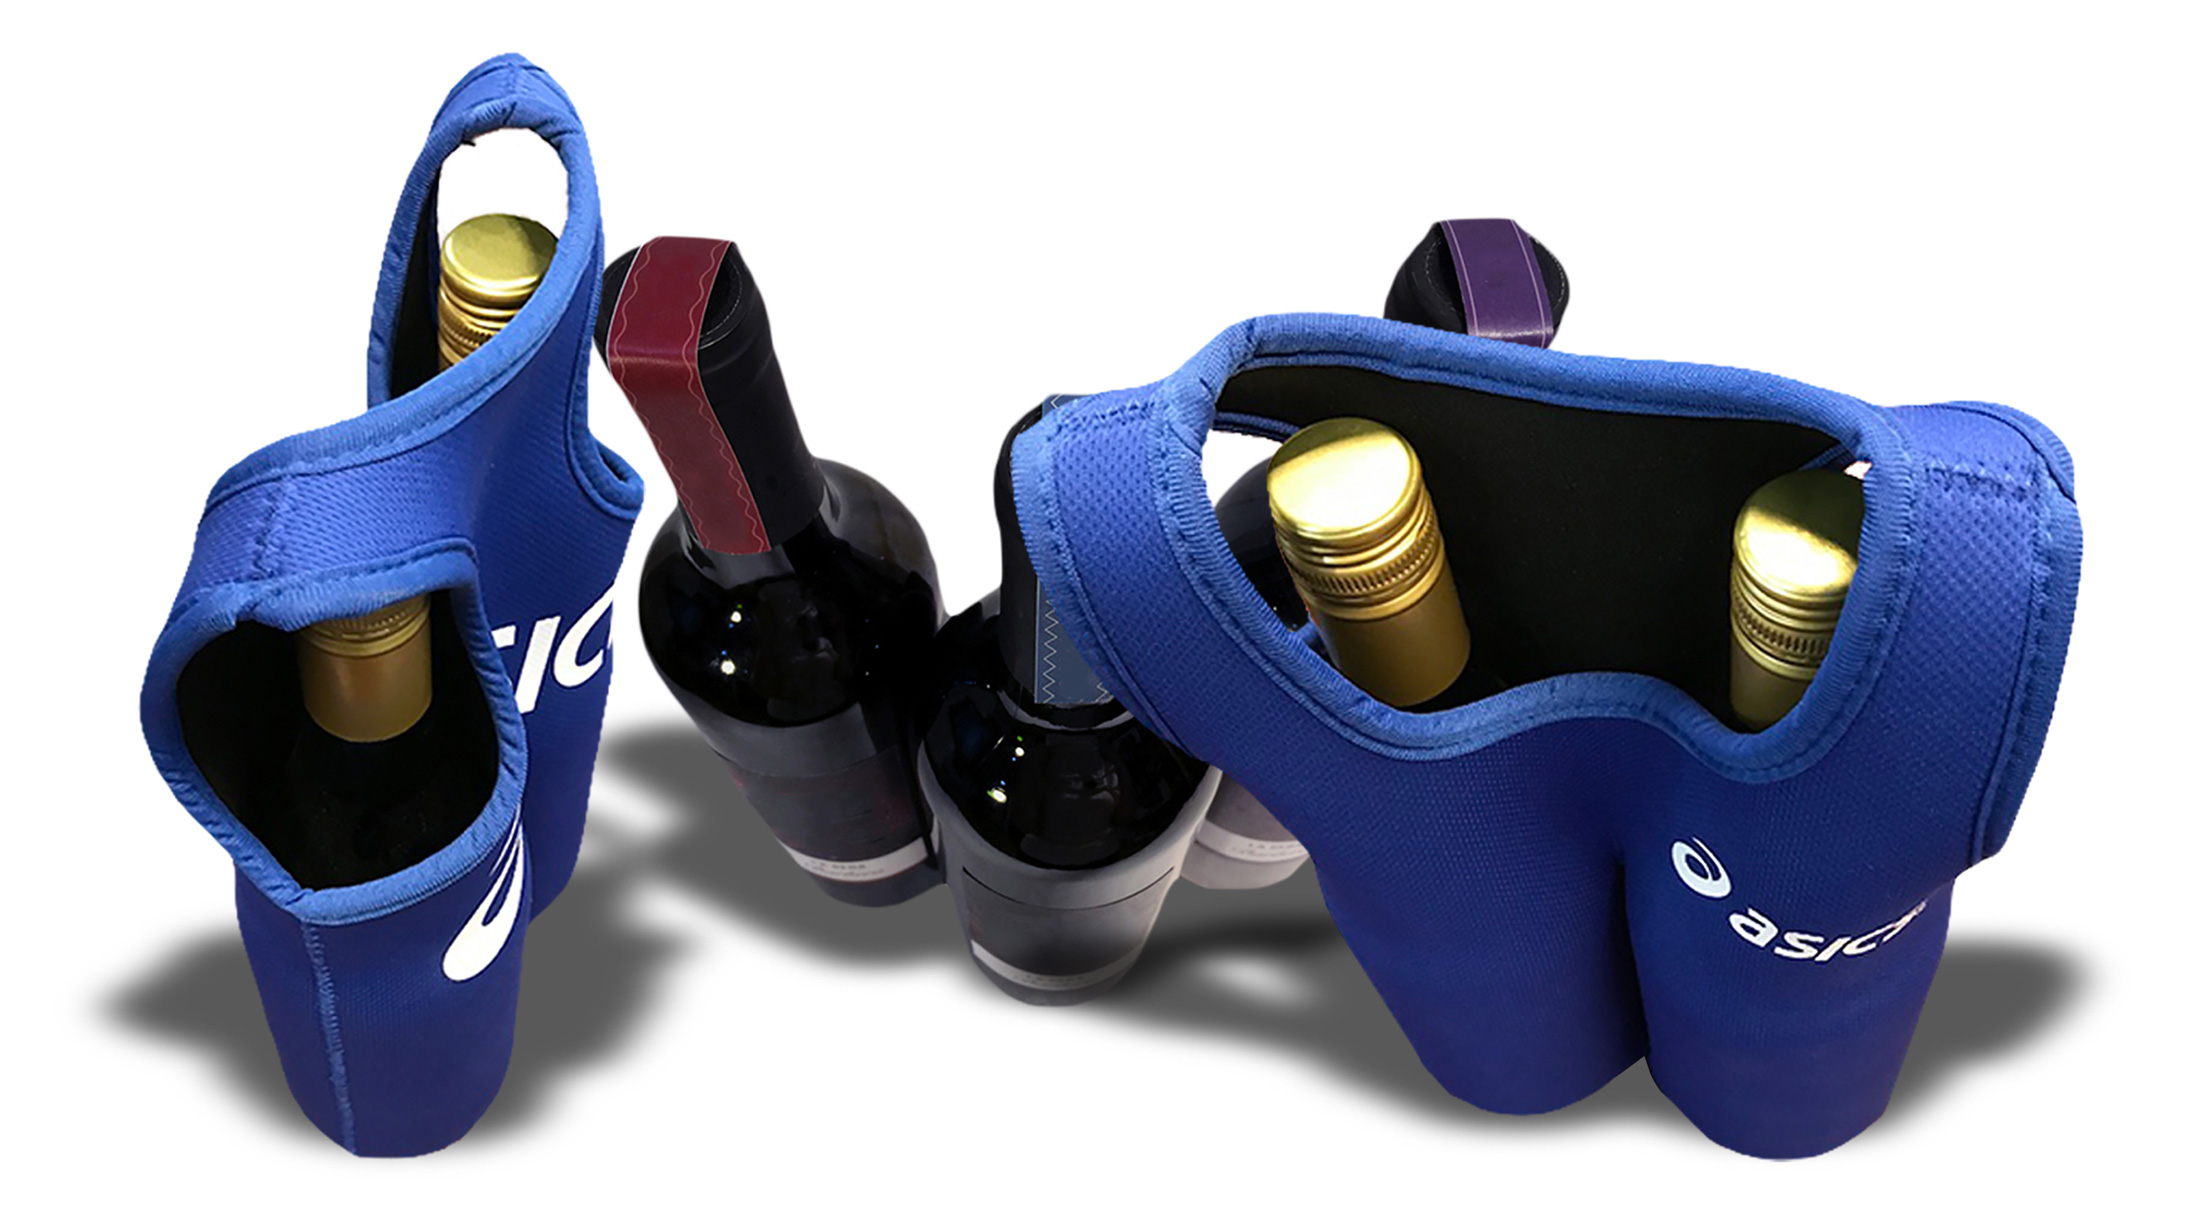 Asics Double Wine Carrier